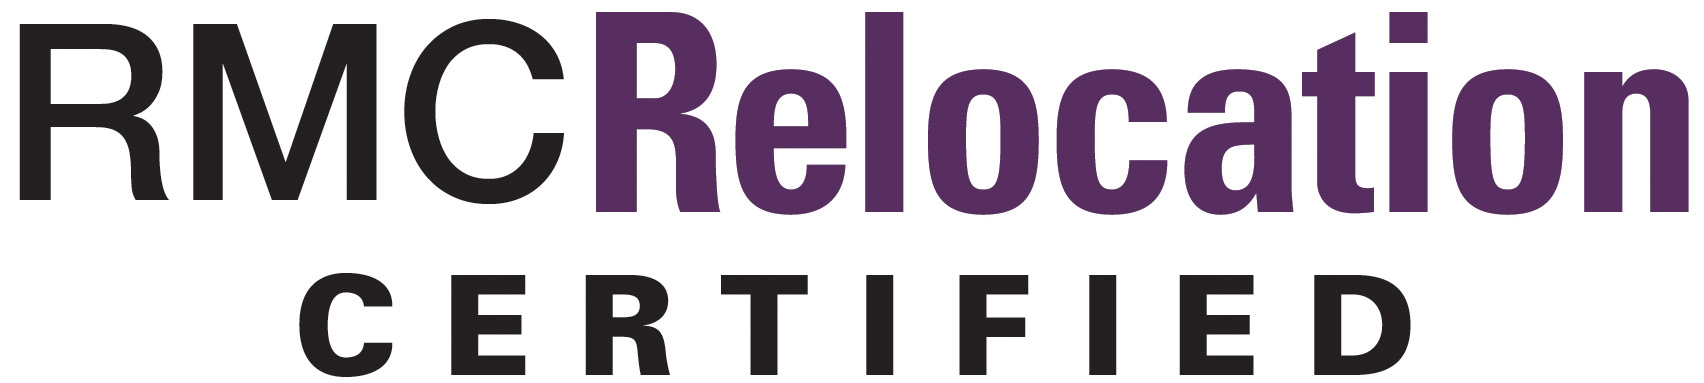 RMC Relocation CertifiedLogo